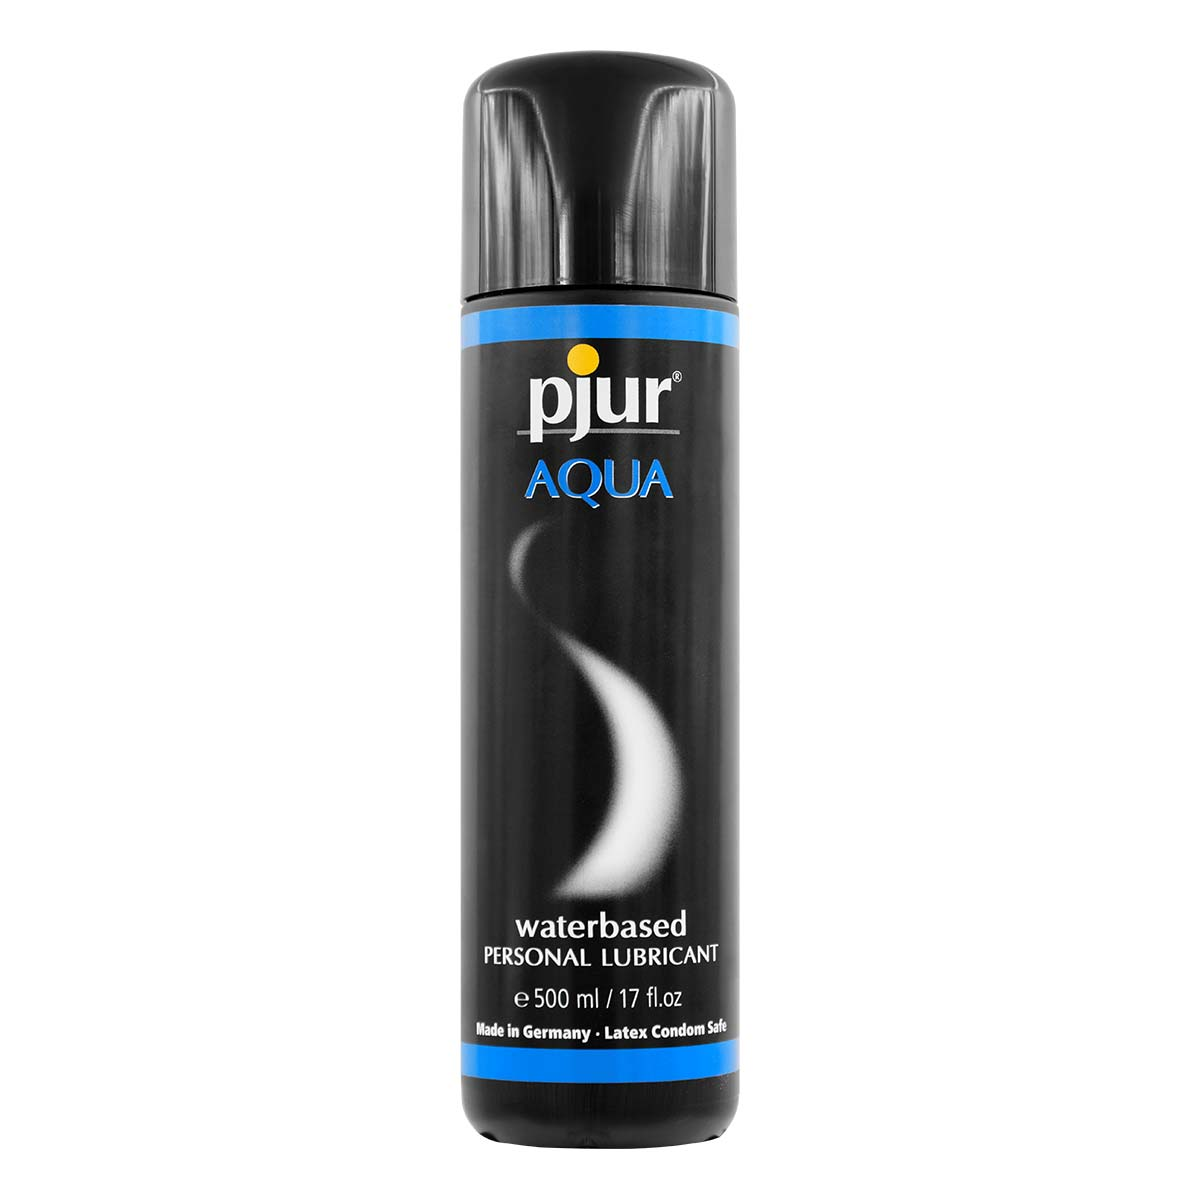 pjur AQUA 500ml Water-based Lubricant